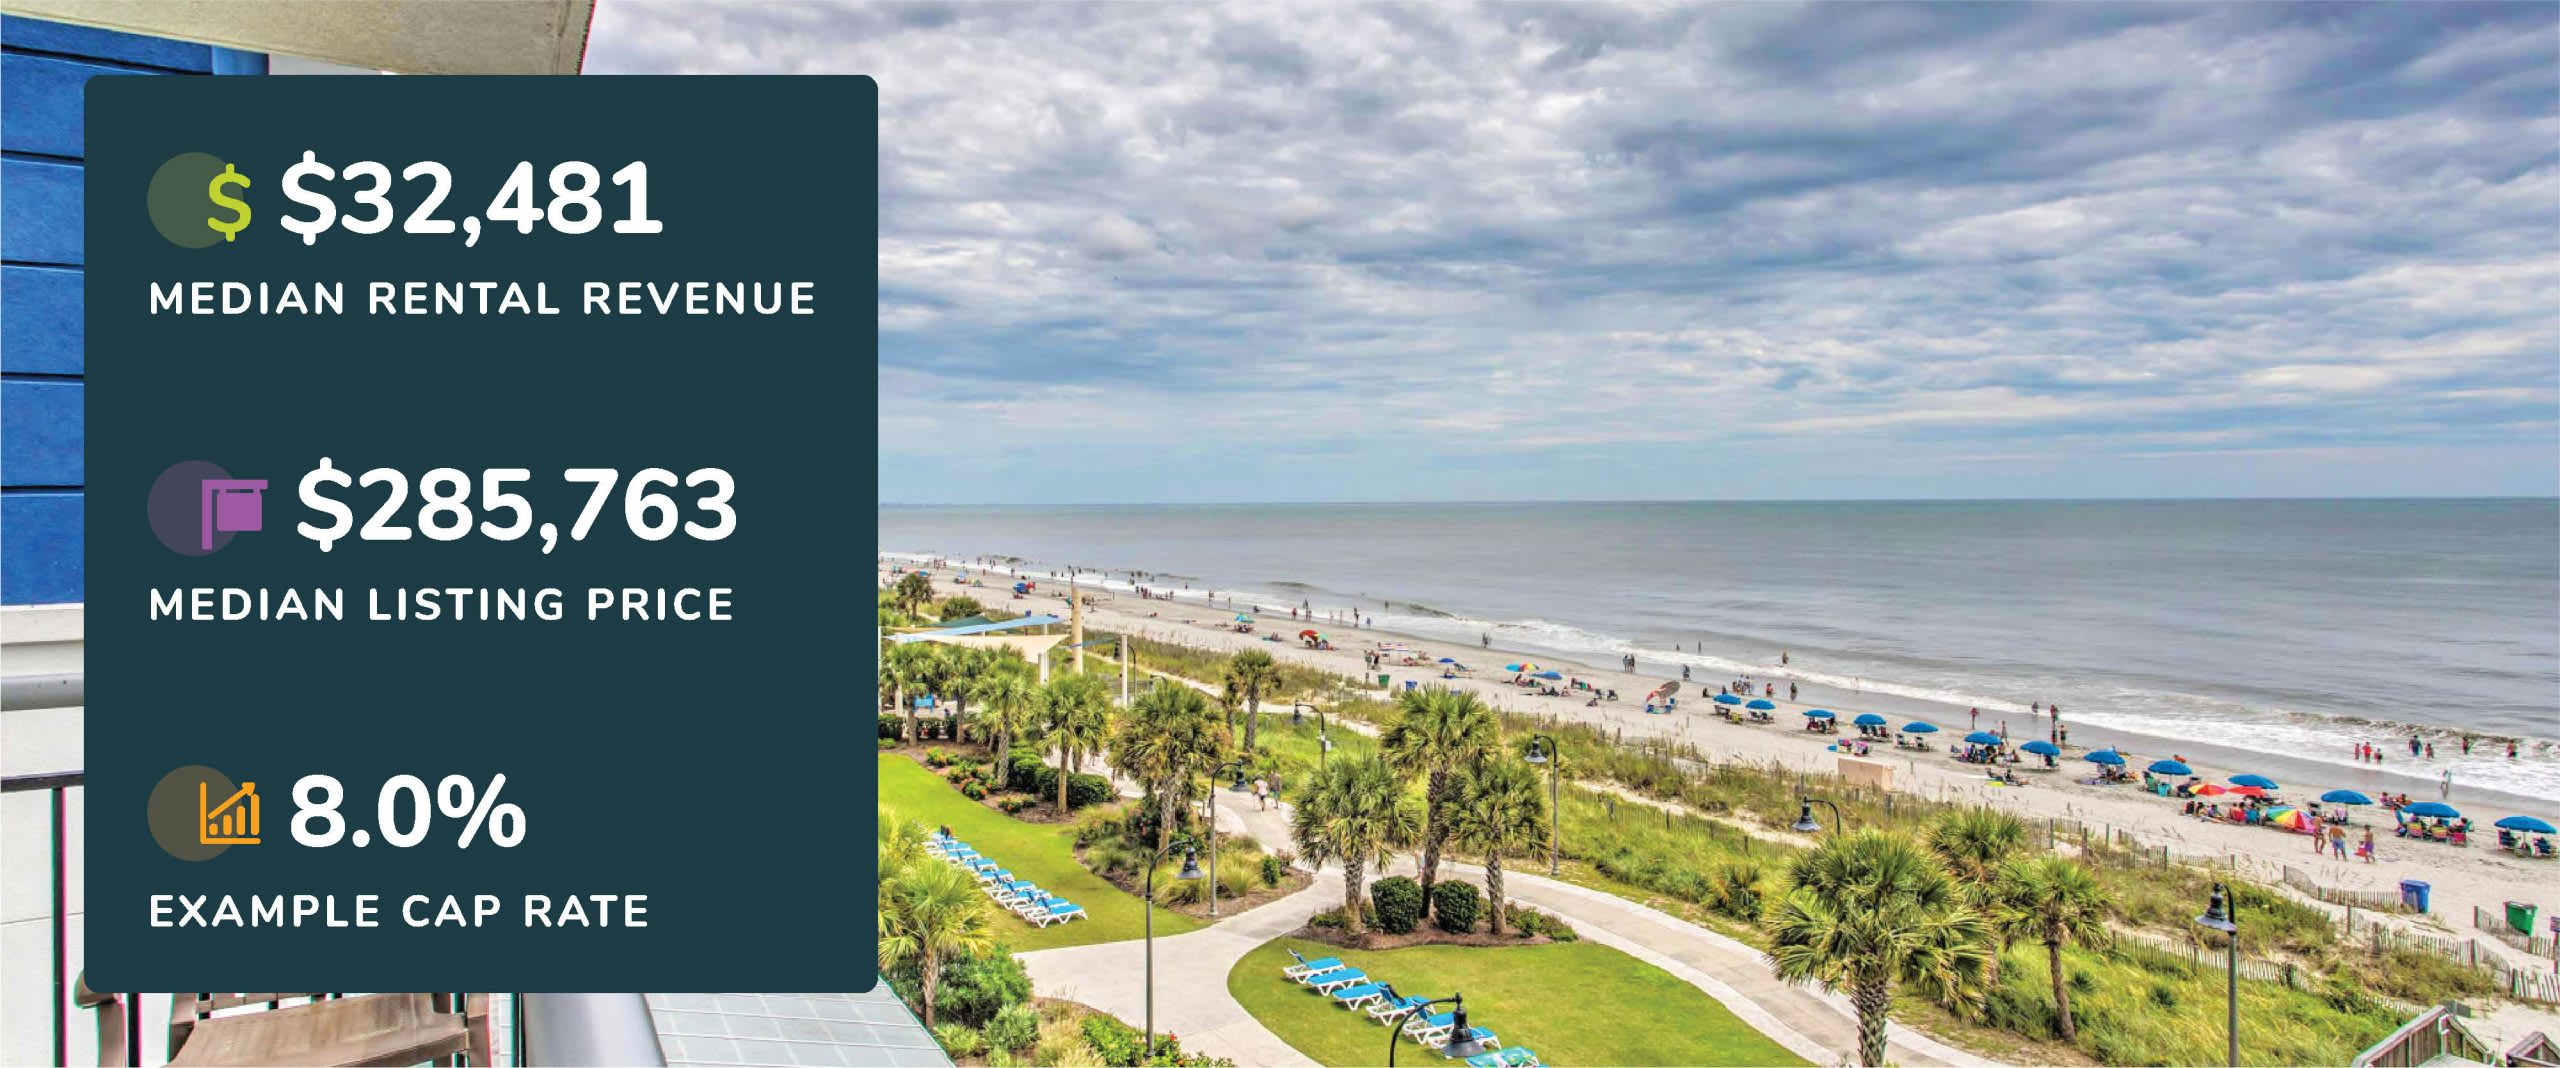 Graphic showing Murrells Inlet, South Carolina median rental revenue, listing price, and example cap rate with a picture of a beach view from a condo